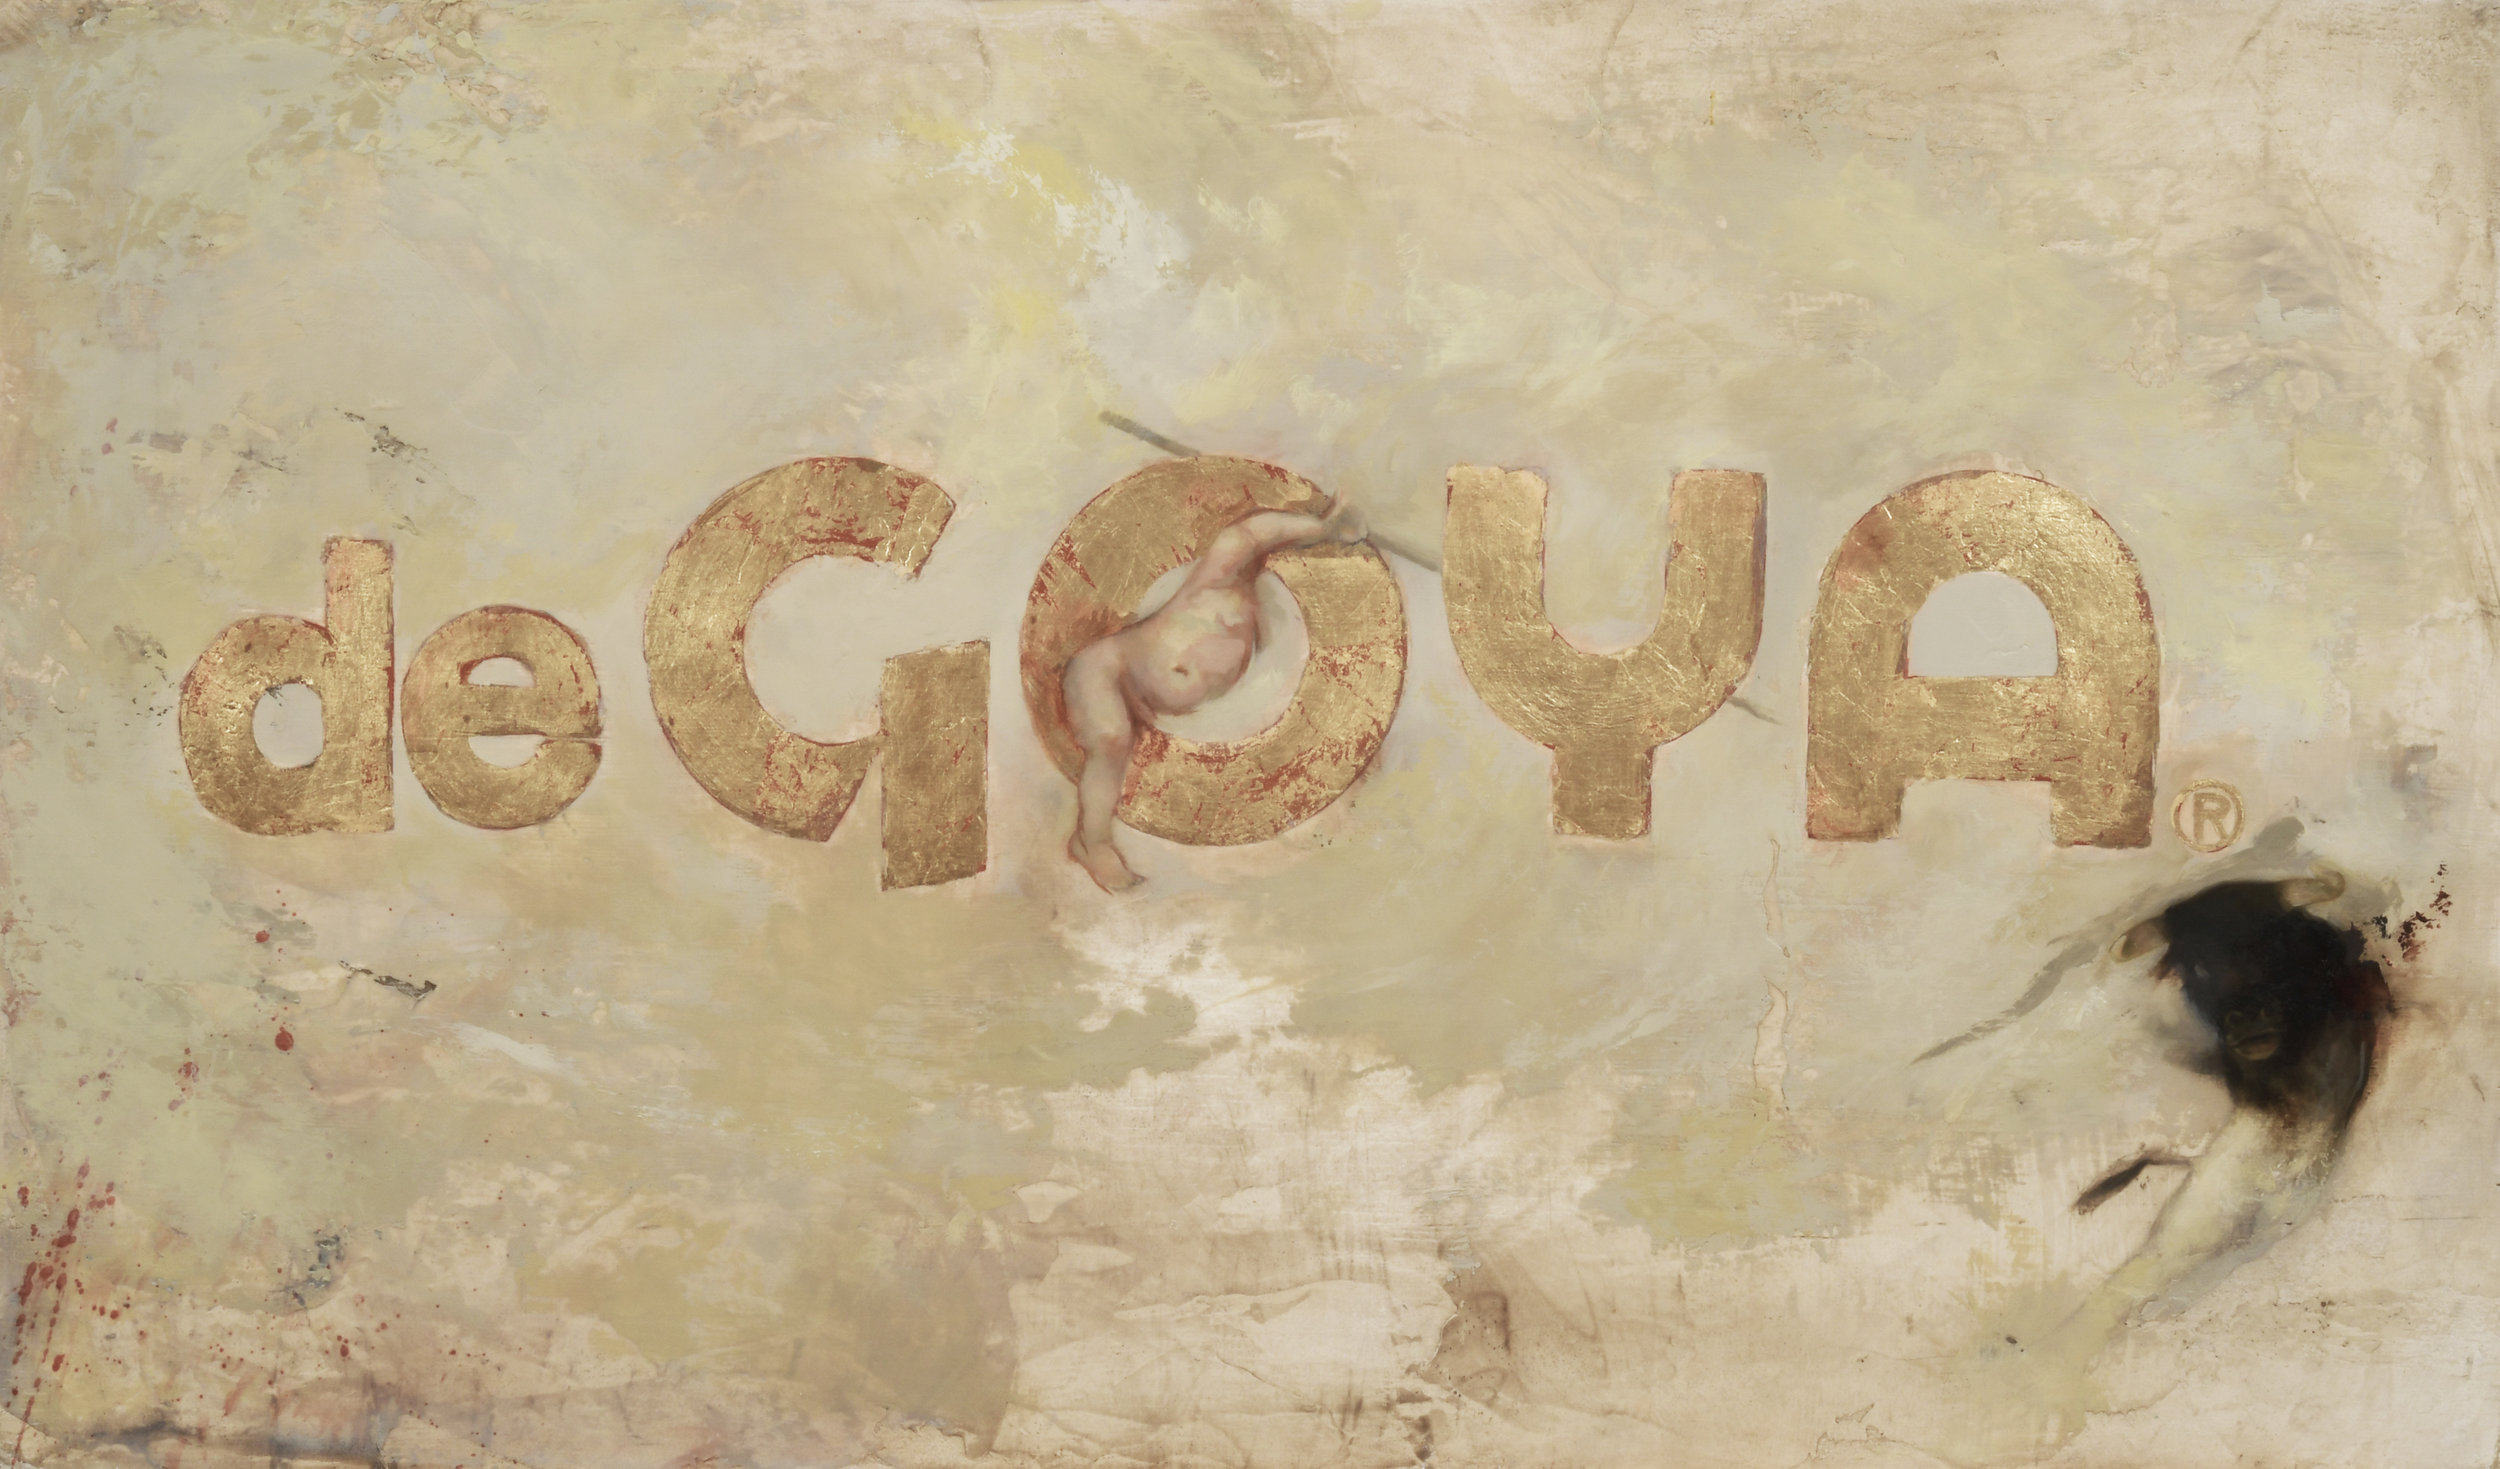 de Goya 24.5 x 14.5 in. Oil and gold leaf on board.